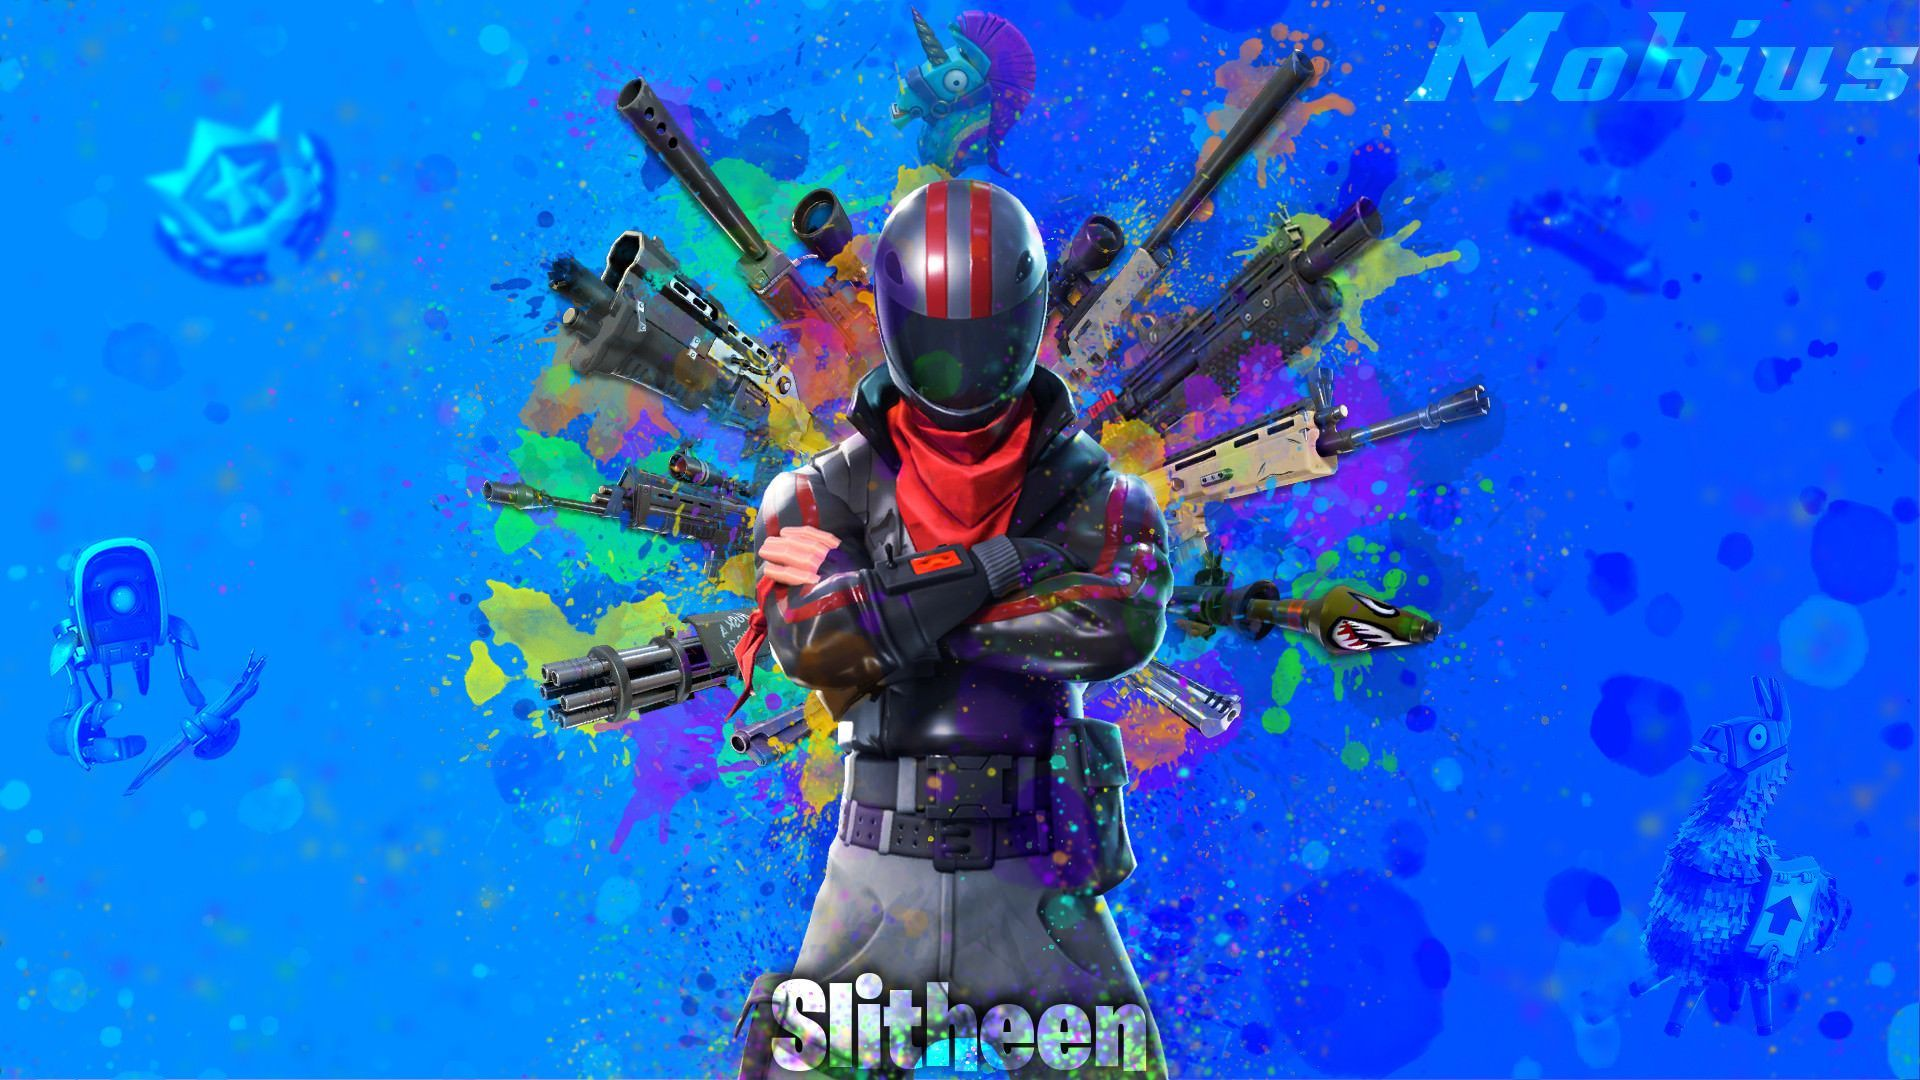 Fortnite Omega Cool Wallpapers Top Free Fortnite Omega Cool Backgrounds Wallpaperaccess